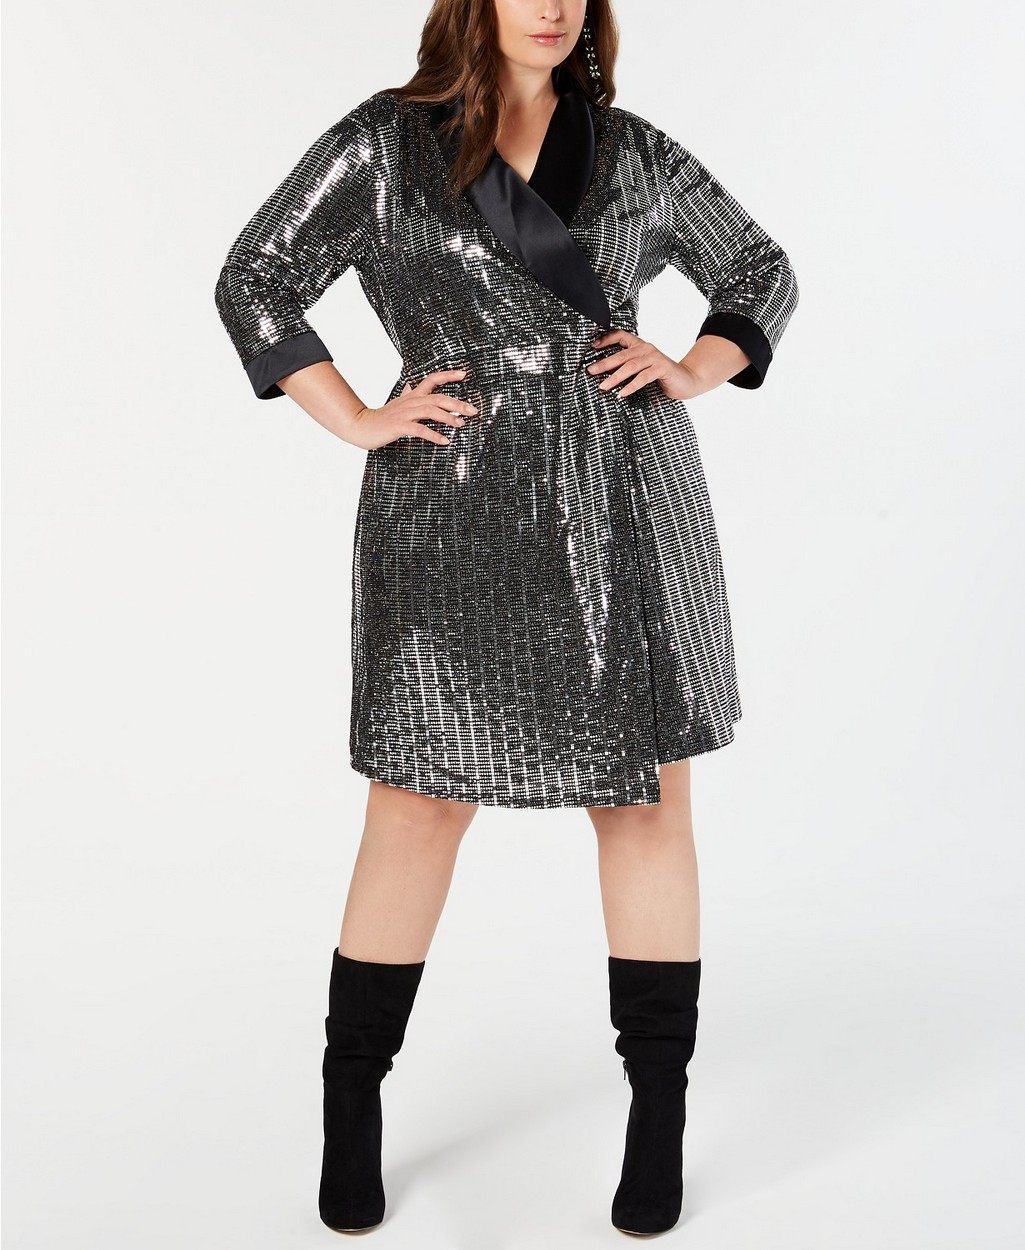 The Best Plus Size Sequins Finds for New Yea's Eve: High neck drape armhole midi dress in all over sequin by ASOS DESIGN Curve